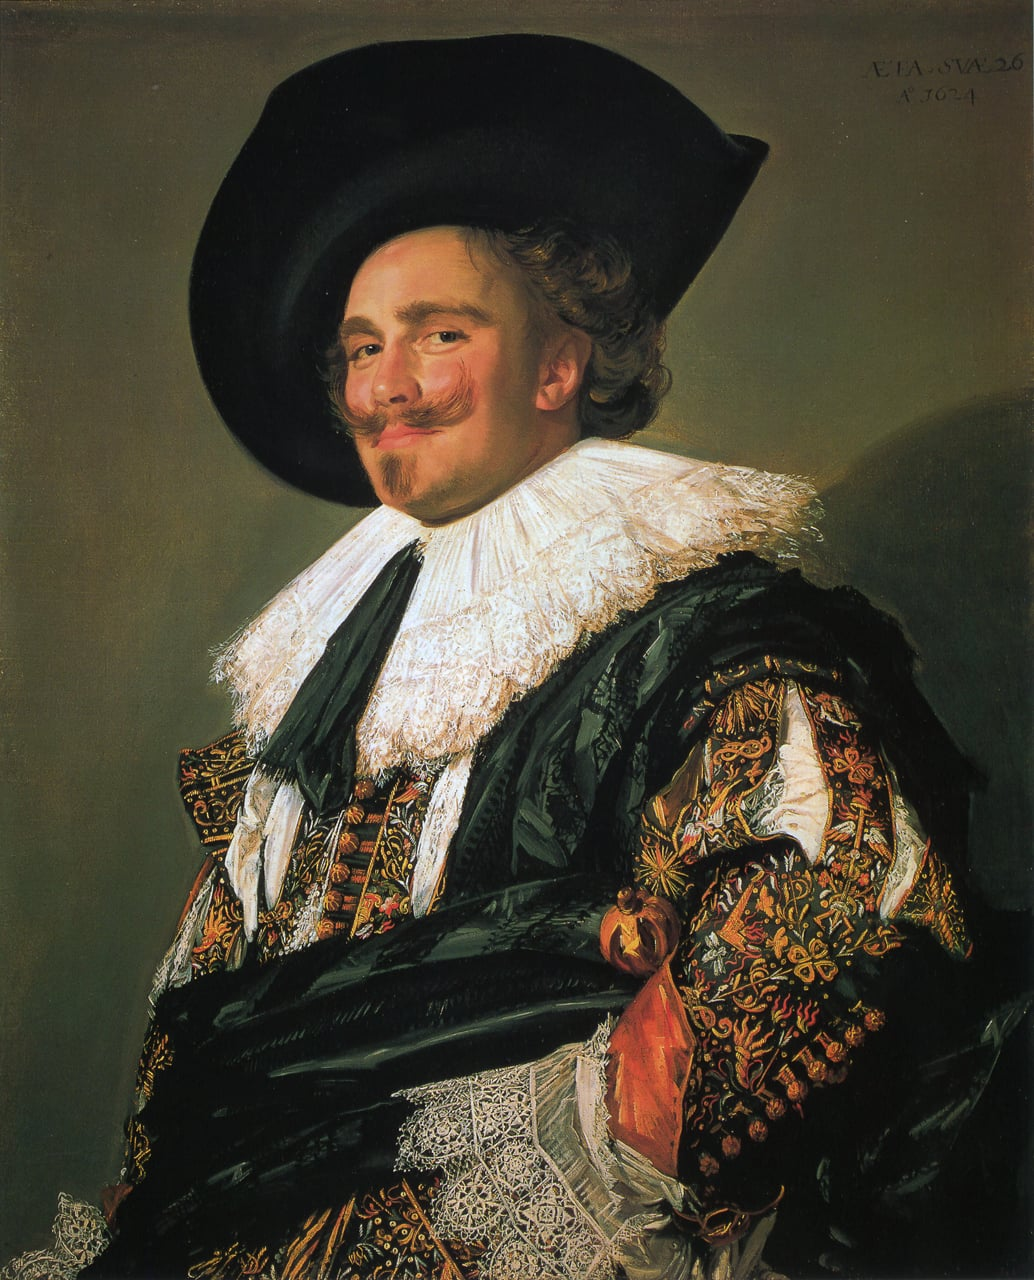 7. Frans Hals, The Laughing Cavalier, 1624 - The Wallace Collection, London